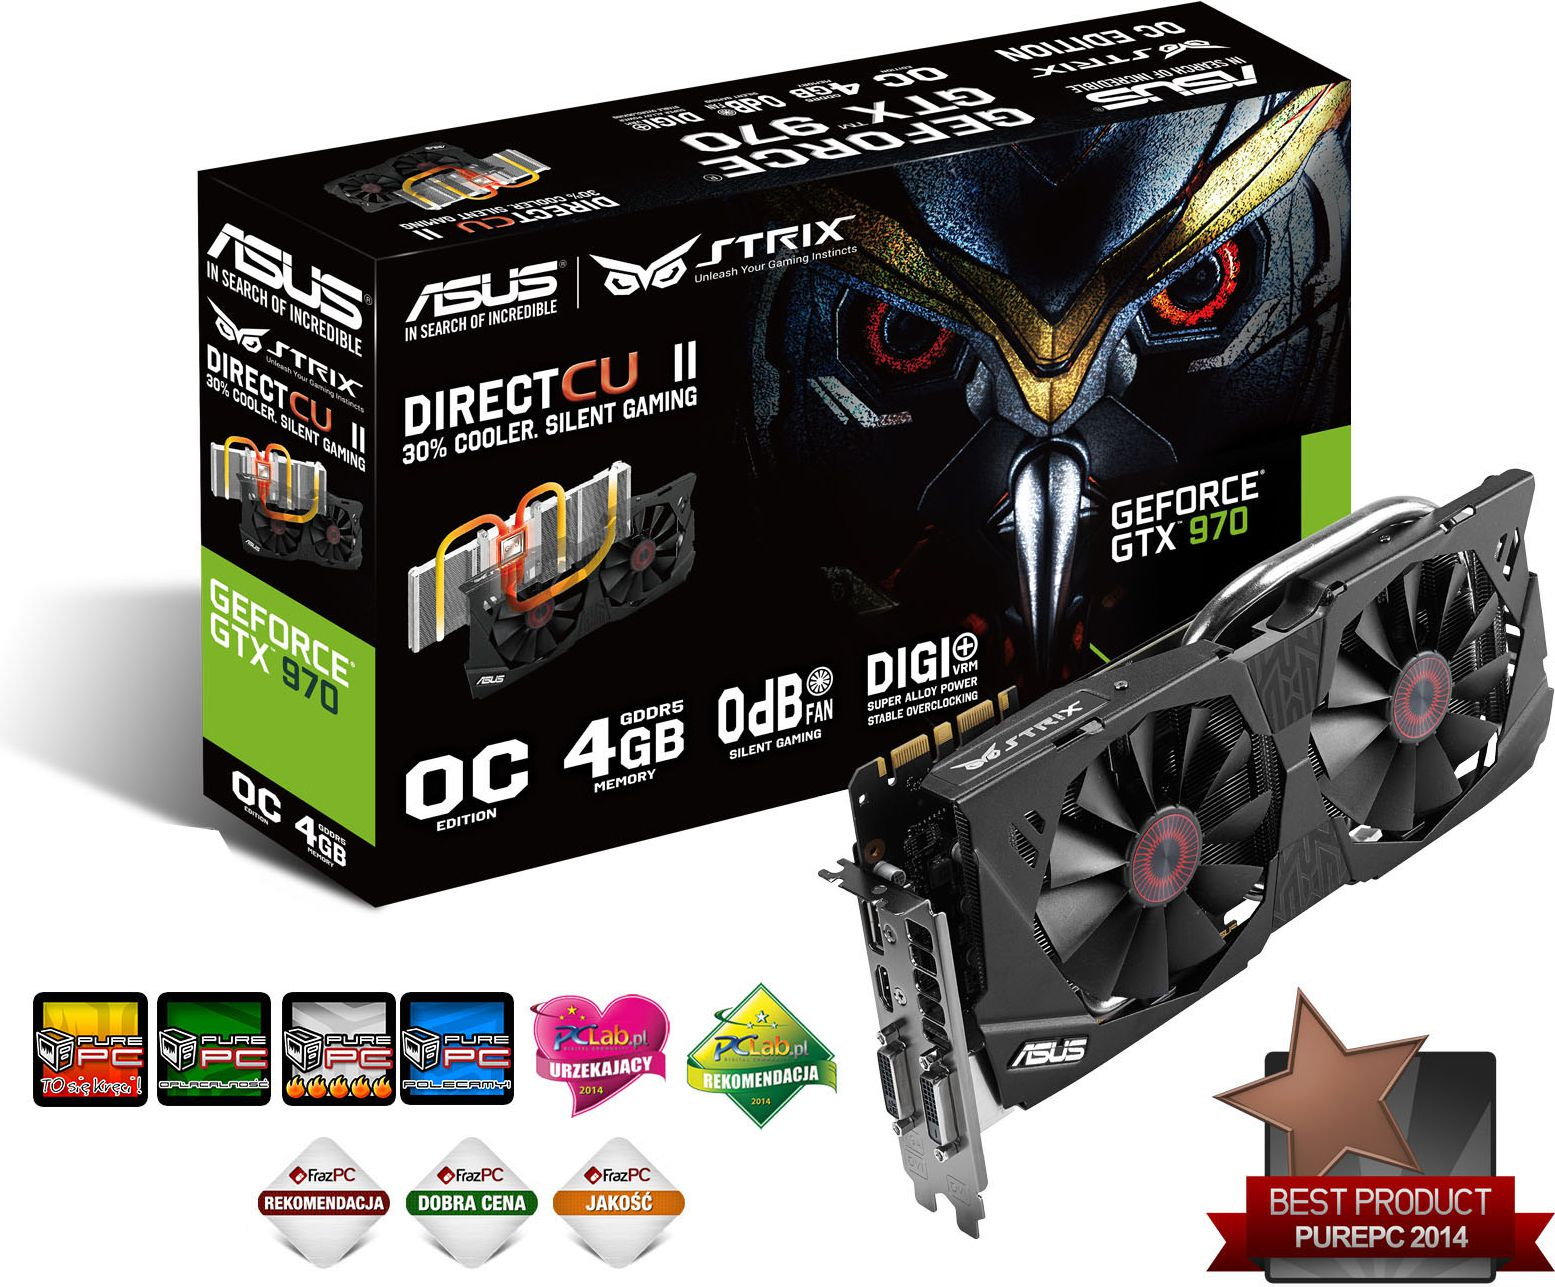 Karta graficzna Asus GeForce GTX 970 Strix 4GB DDR5 (256 bit) DP, HDMI, 2x DVI (STRIX-GTX970-DC2OC-4GD5)